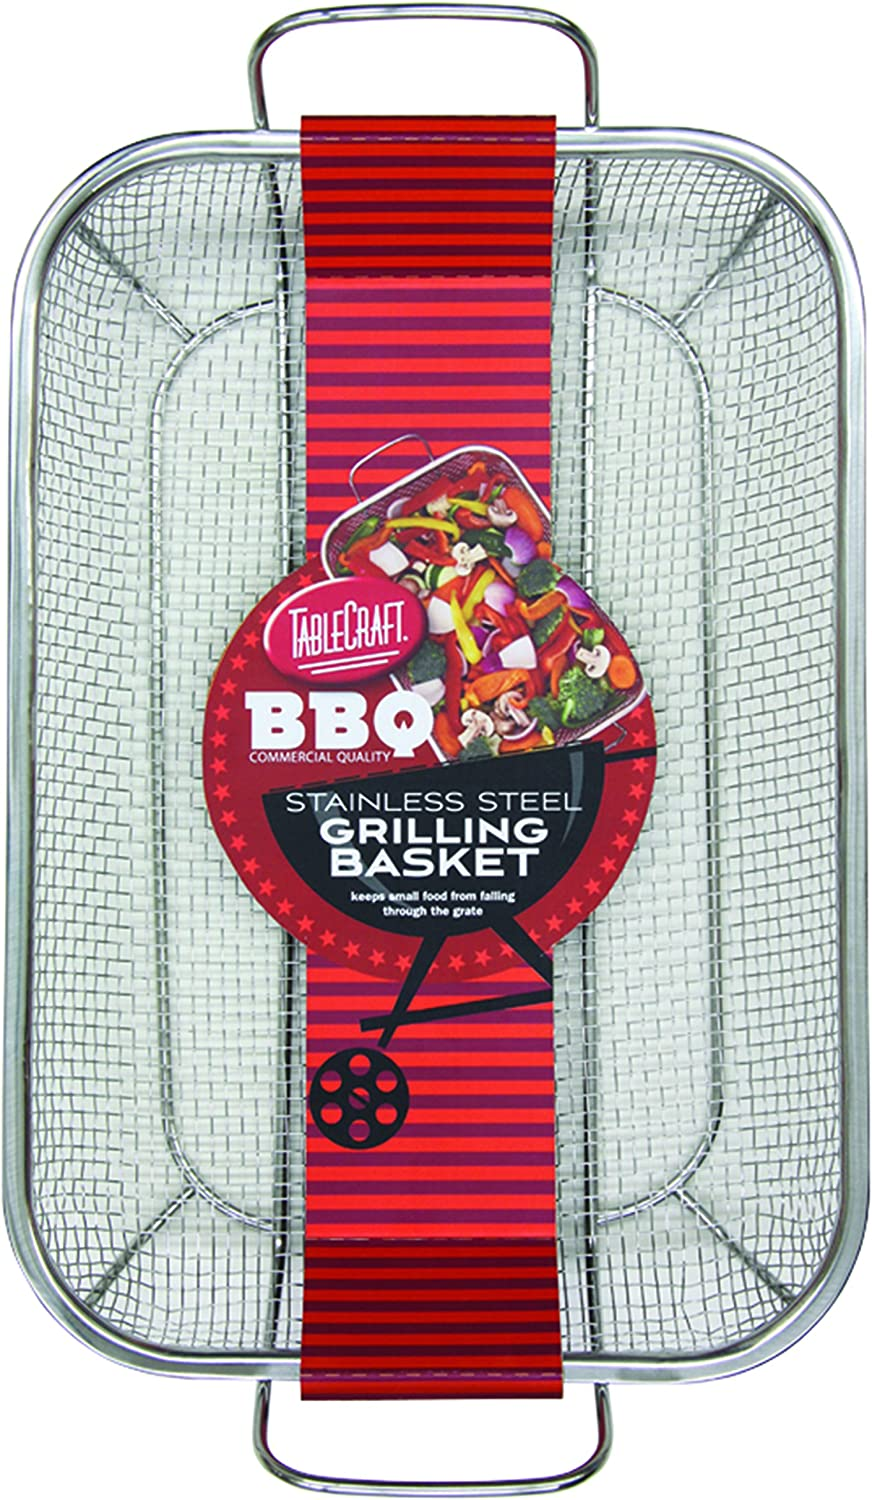 TableCraft BBQ Rectangular Grilling Basket with Handle, Silver, Medium